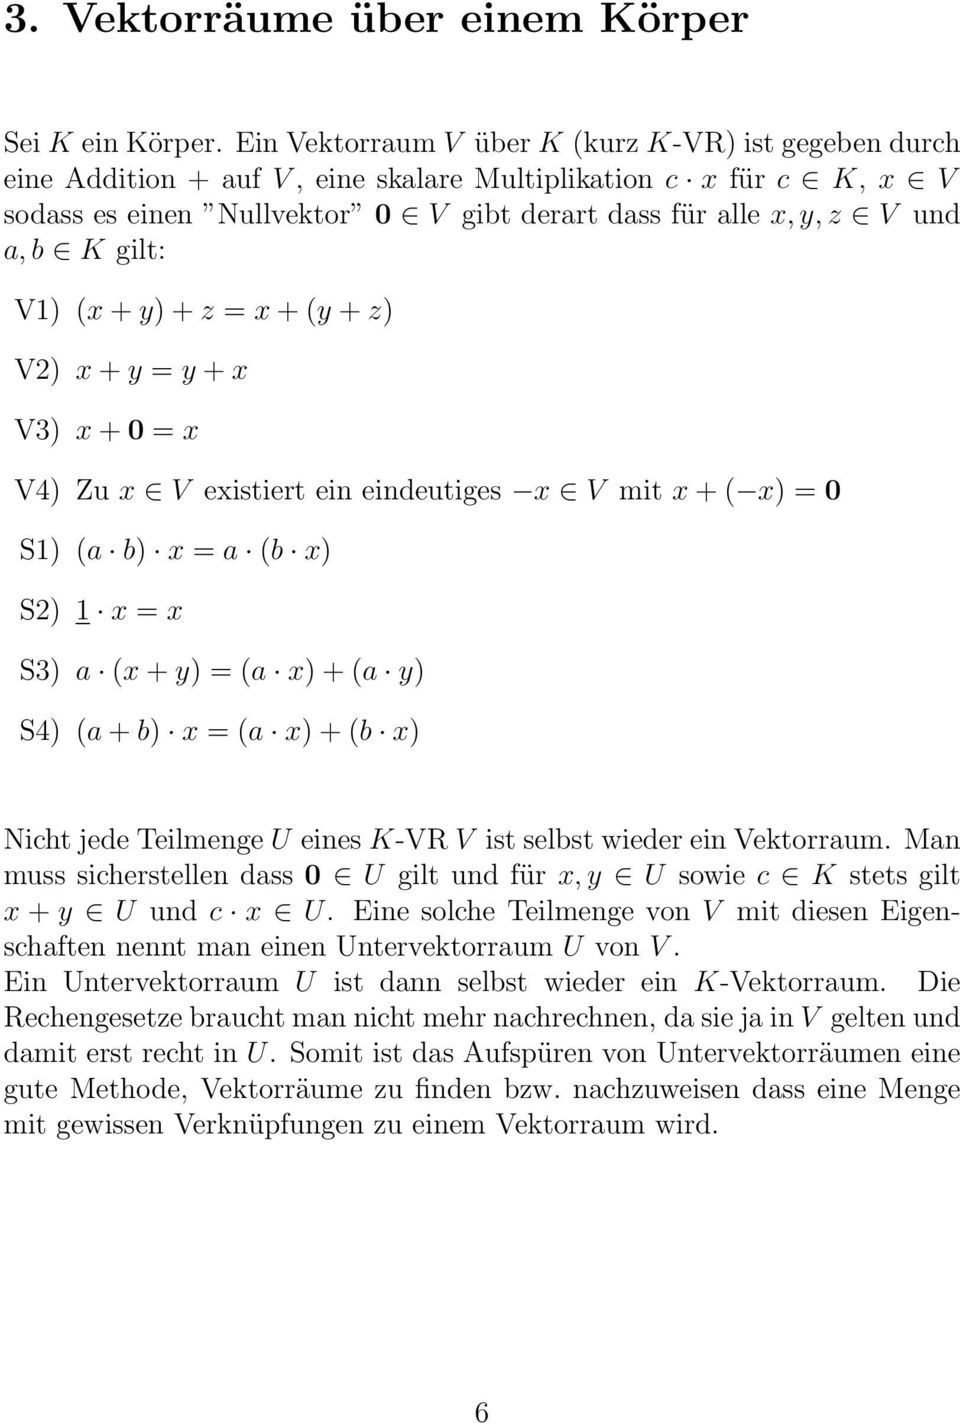 gilt: V1) (x + y) + z = x + (y + z) V2) x + y = y + x V3) x + 0 = x V4) Zu x V existiert ein eindeutiges x V mit x + ( x) = 0 S1) (a b) x = a (b x) S2) 1 x = x S3) a (x + y) = (a x) + (a y) S4) (a +